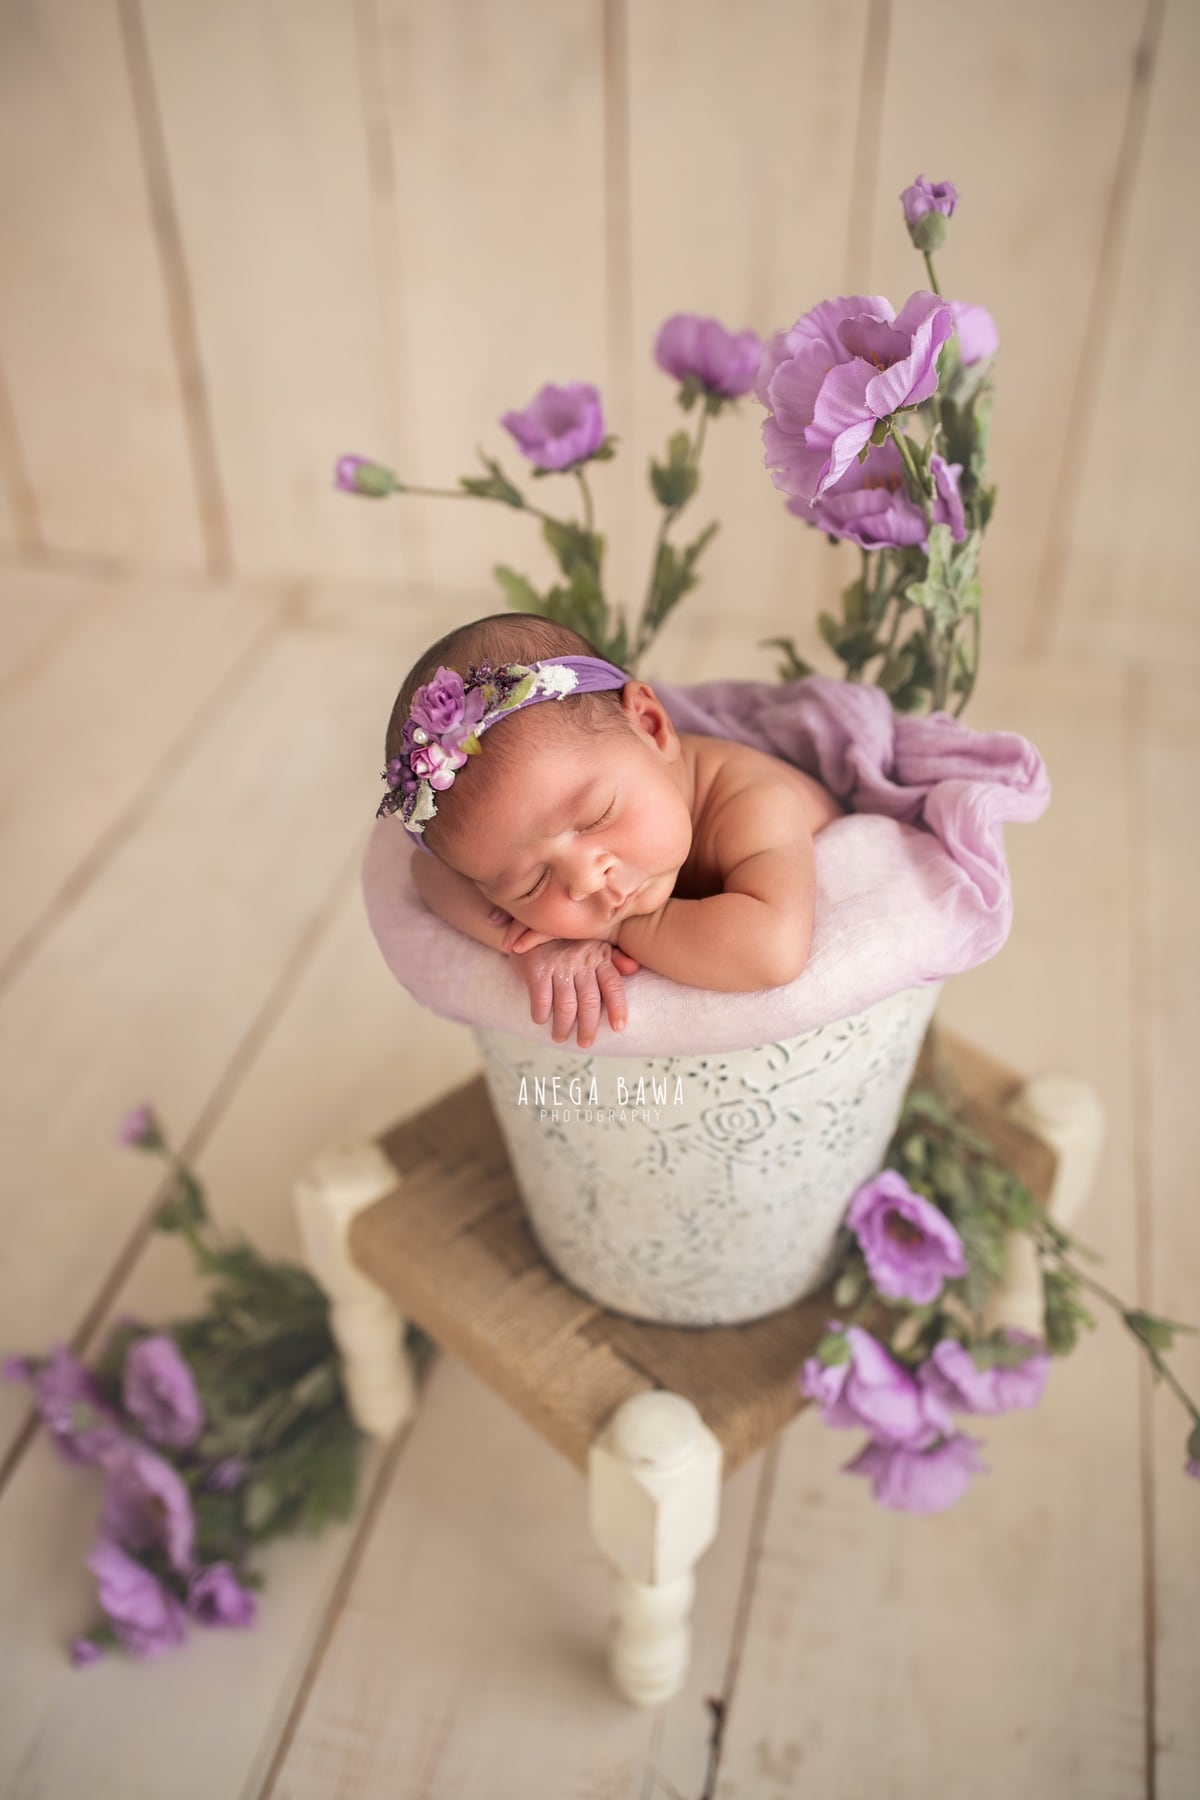 248602-light-wooden-background-purple-floral-lavender-newborn-photography-delhi-20-days-baby-boy-photoshoot-gurgaon-anega-bawa